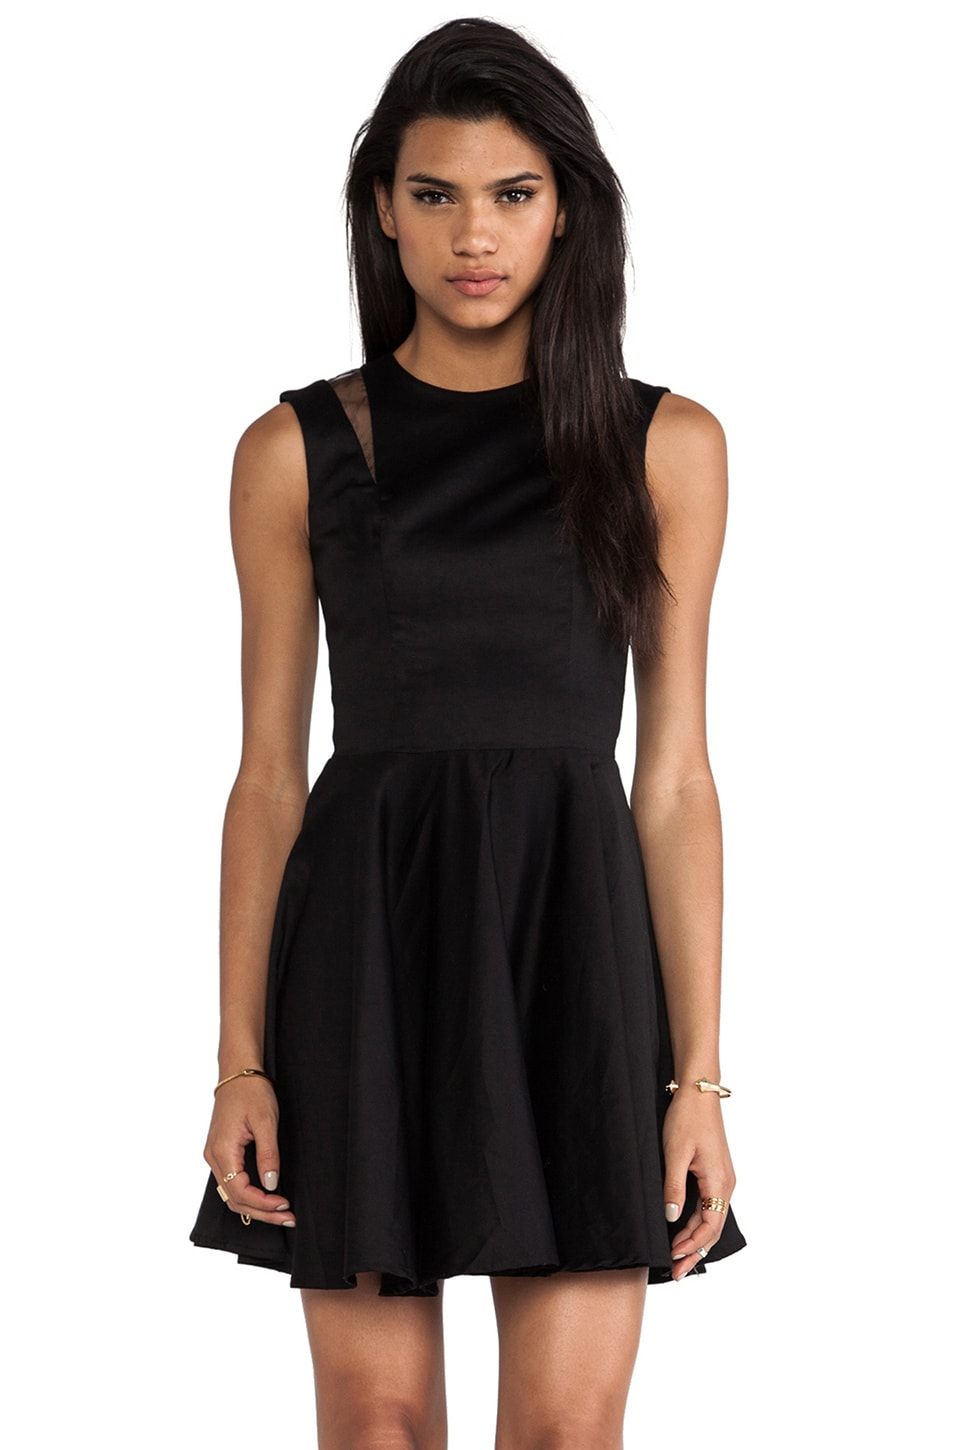 Casper & Pearl Chemistry Dress in Black